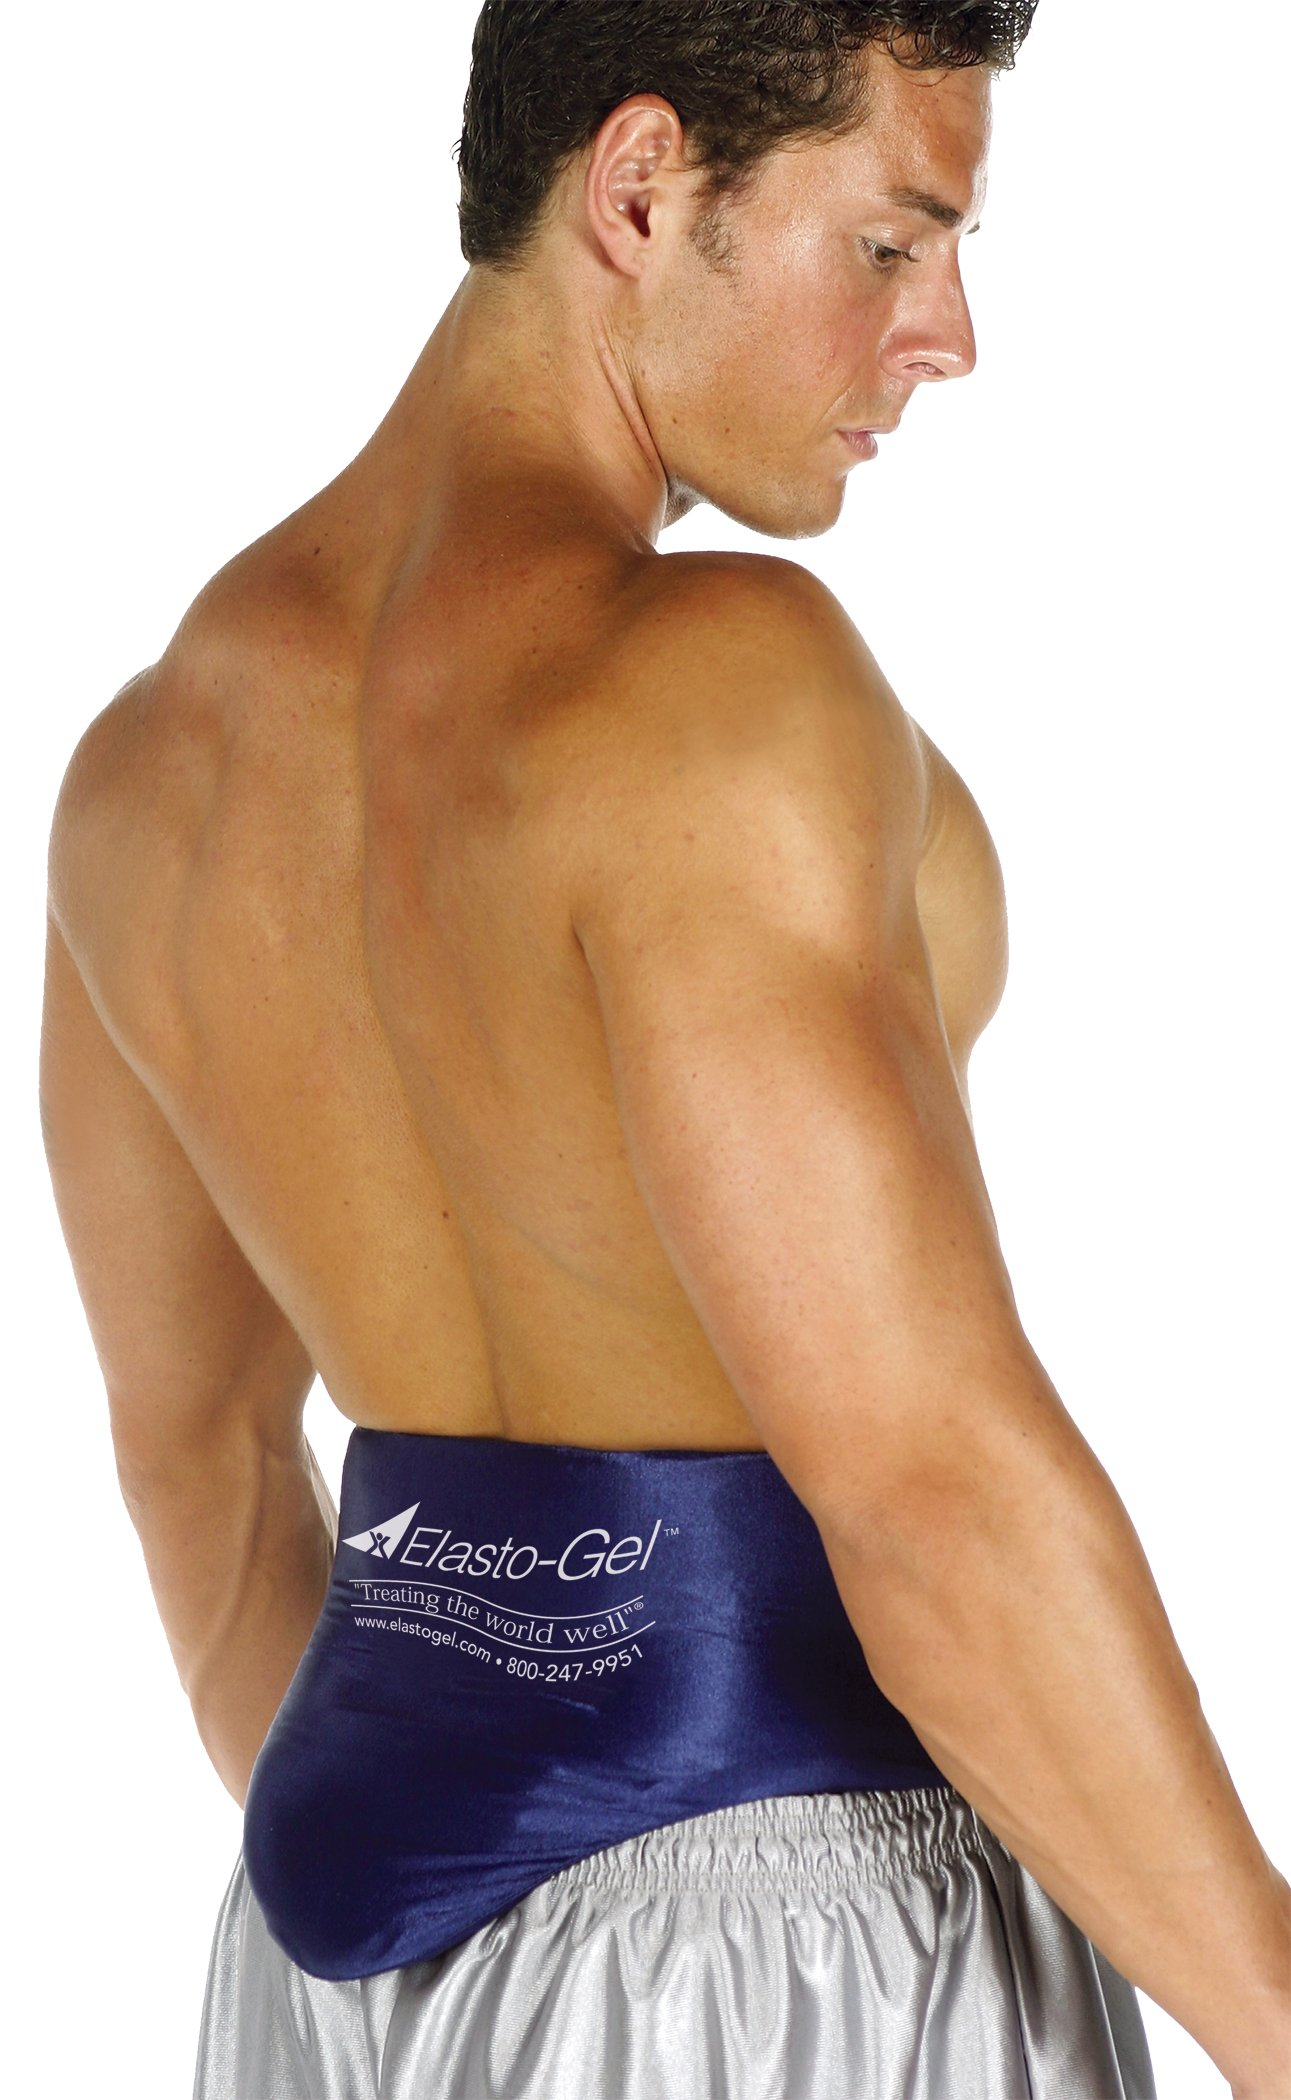 Elasto-Gel Lumbar Wrap L-3XL Waist 36''-52'' Gel 27'' Belt 4''x24'' LW203 by Elasto-Gel